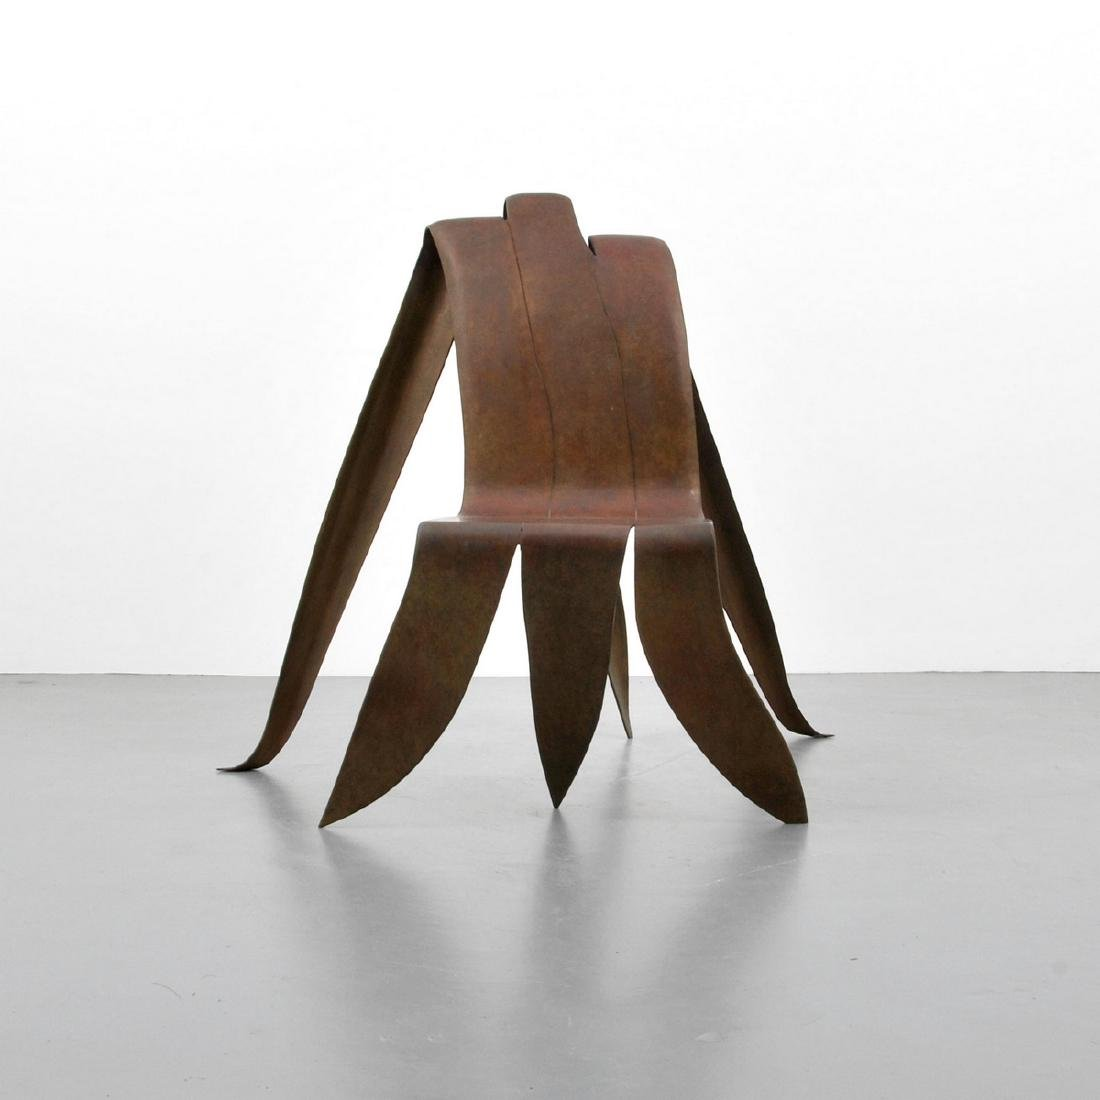 Sculptural Chair, Manner of Vivian Beer, Signed Edition - 5